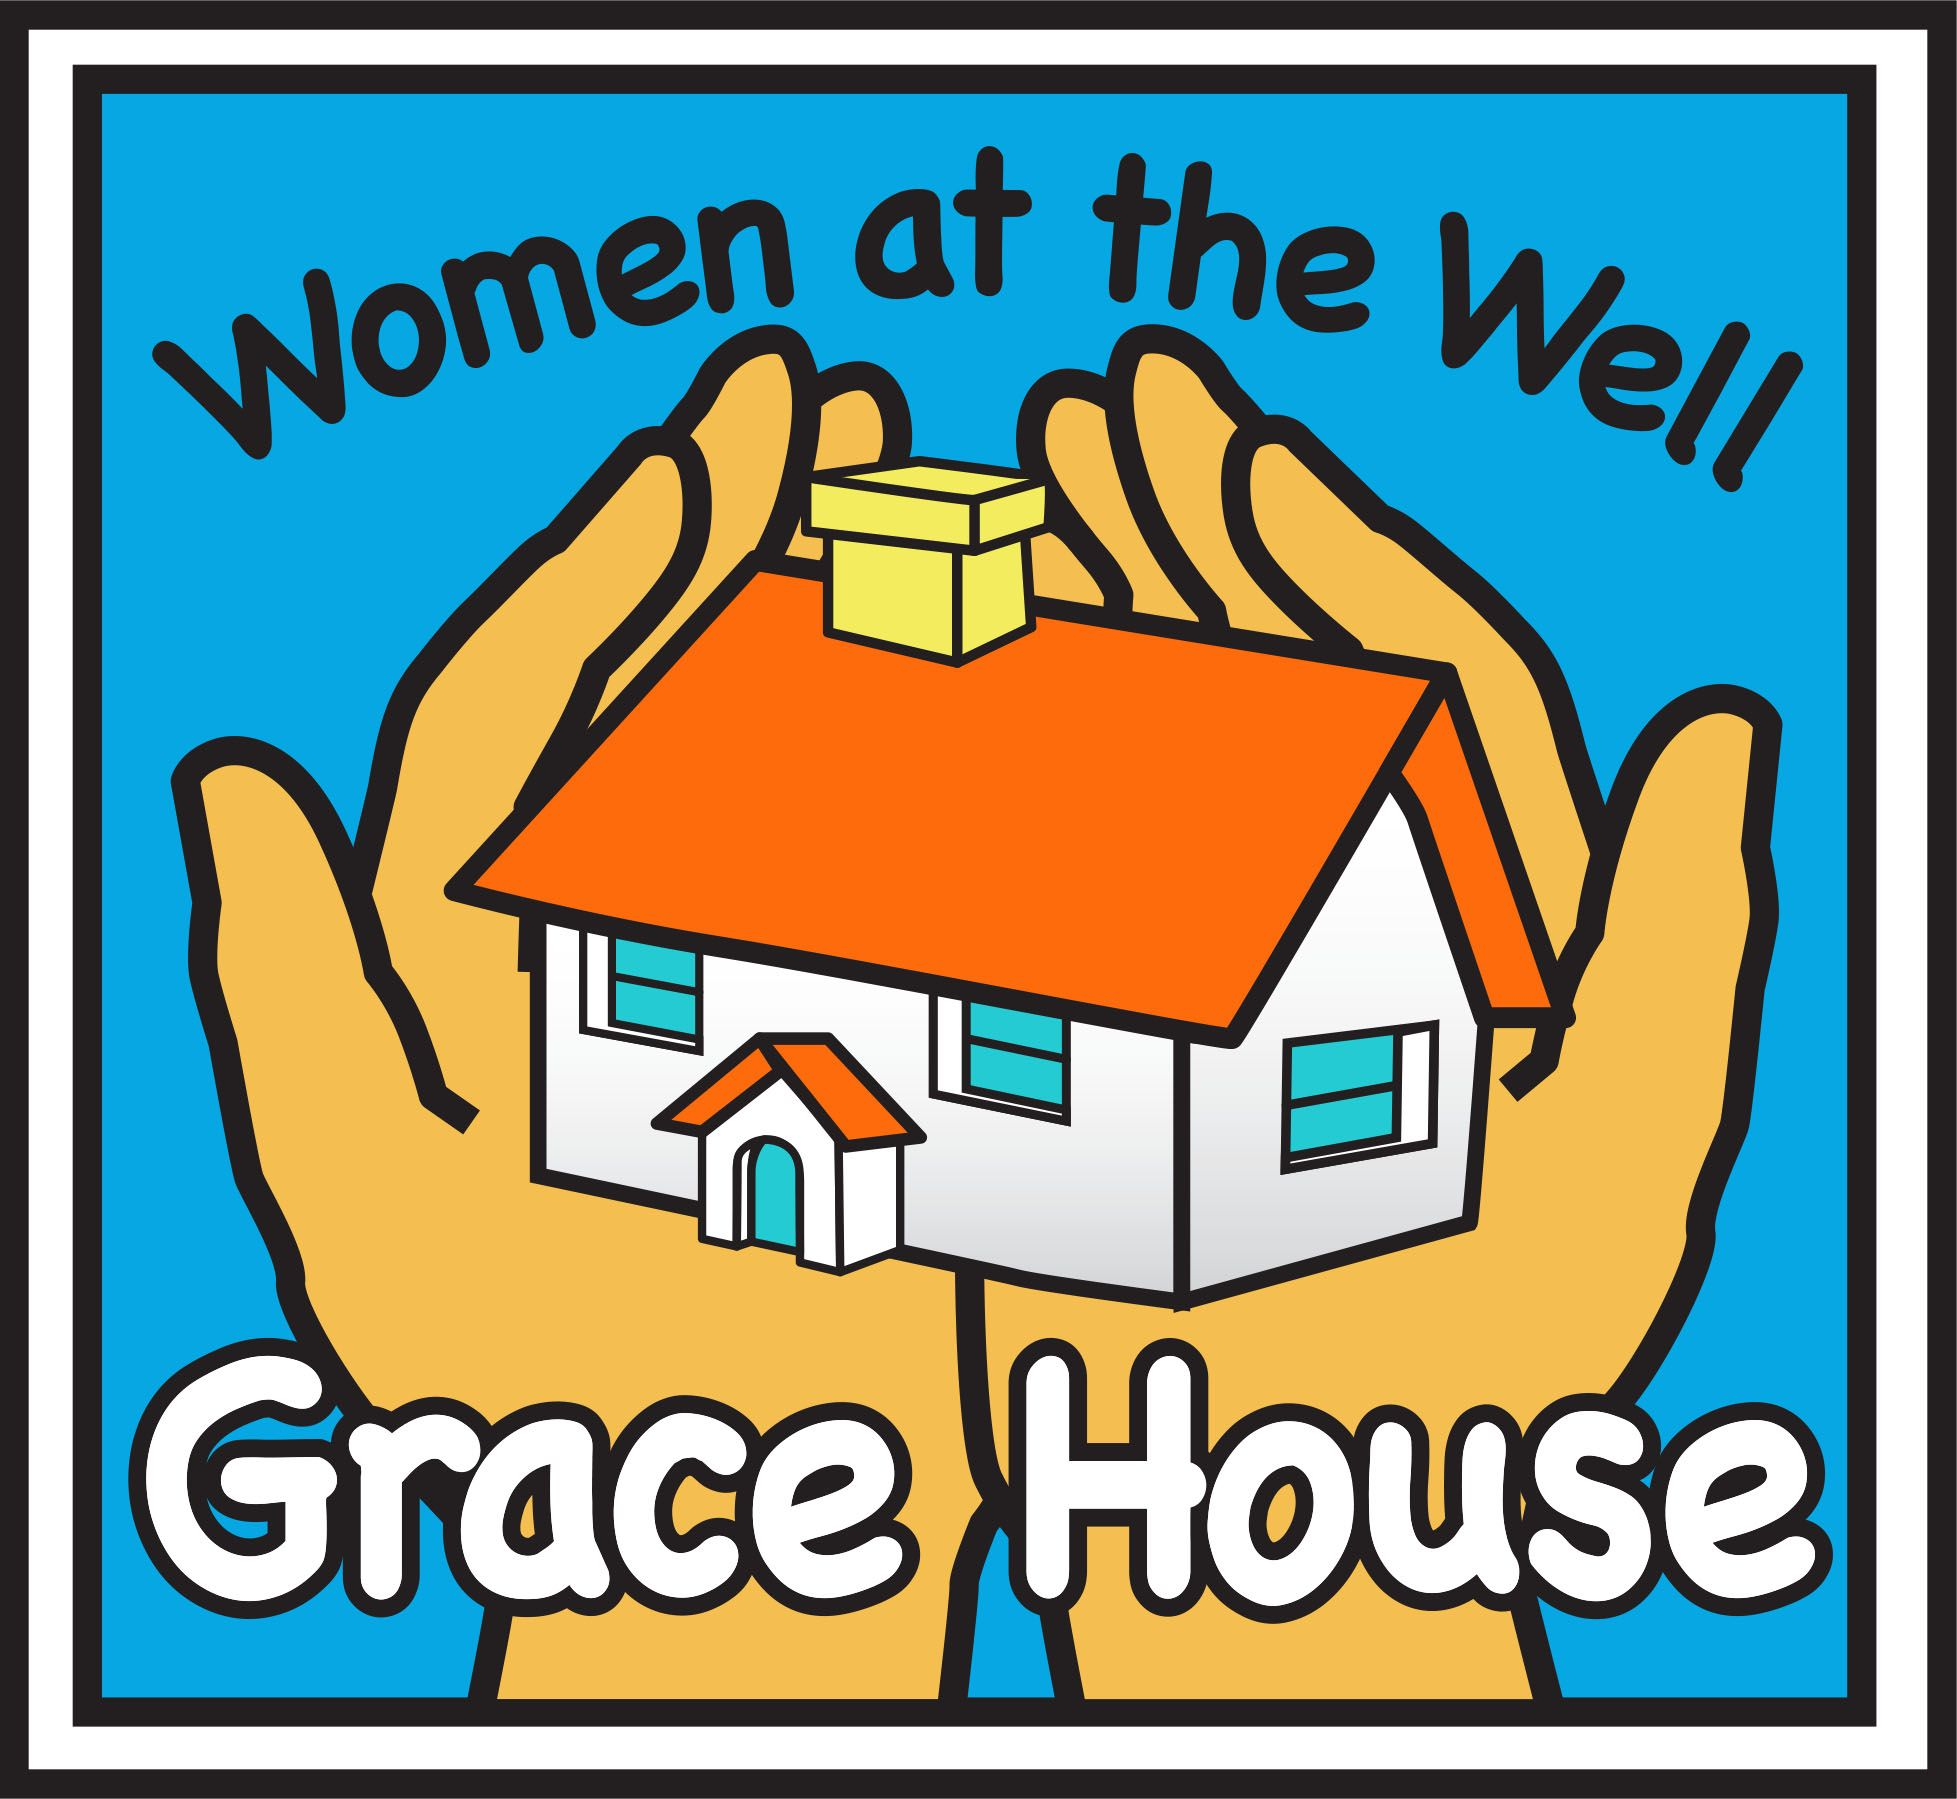 The Well Grace House for Women